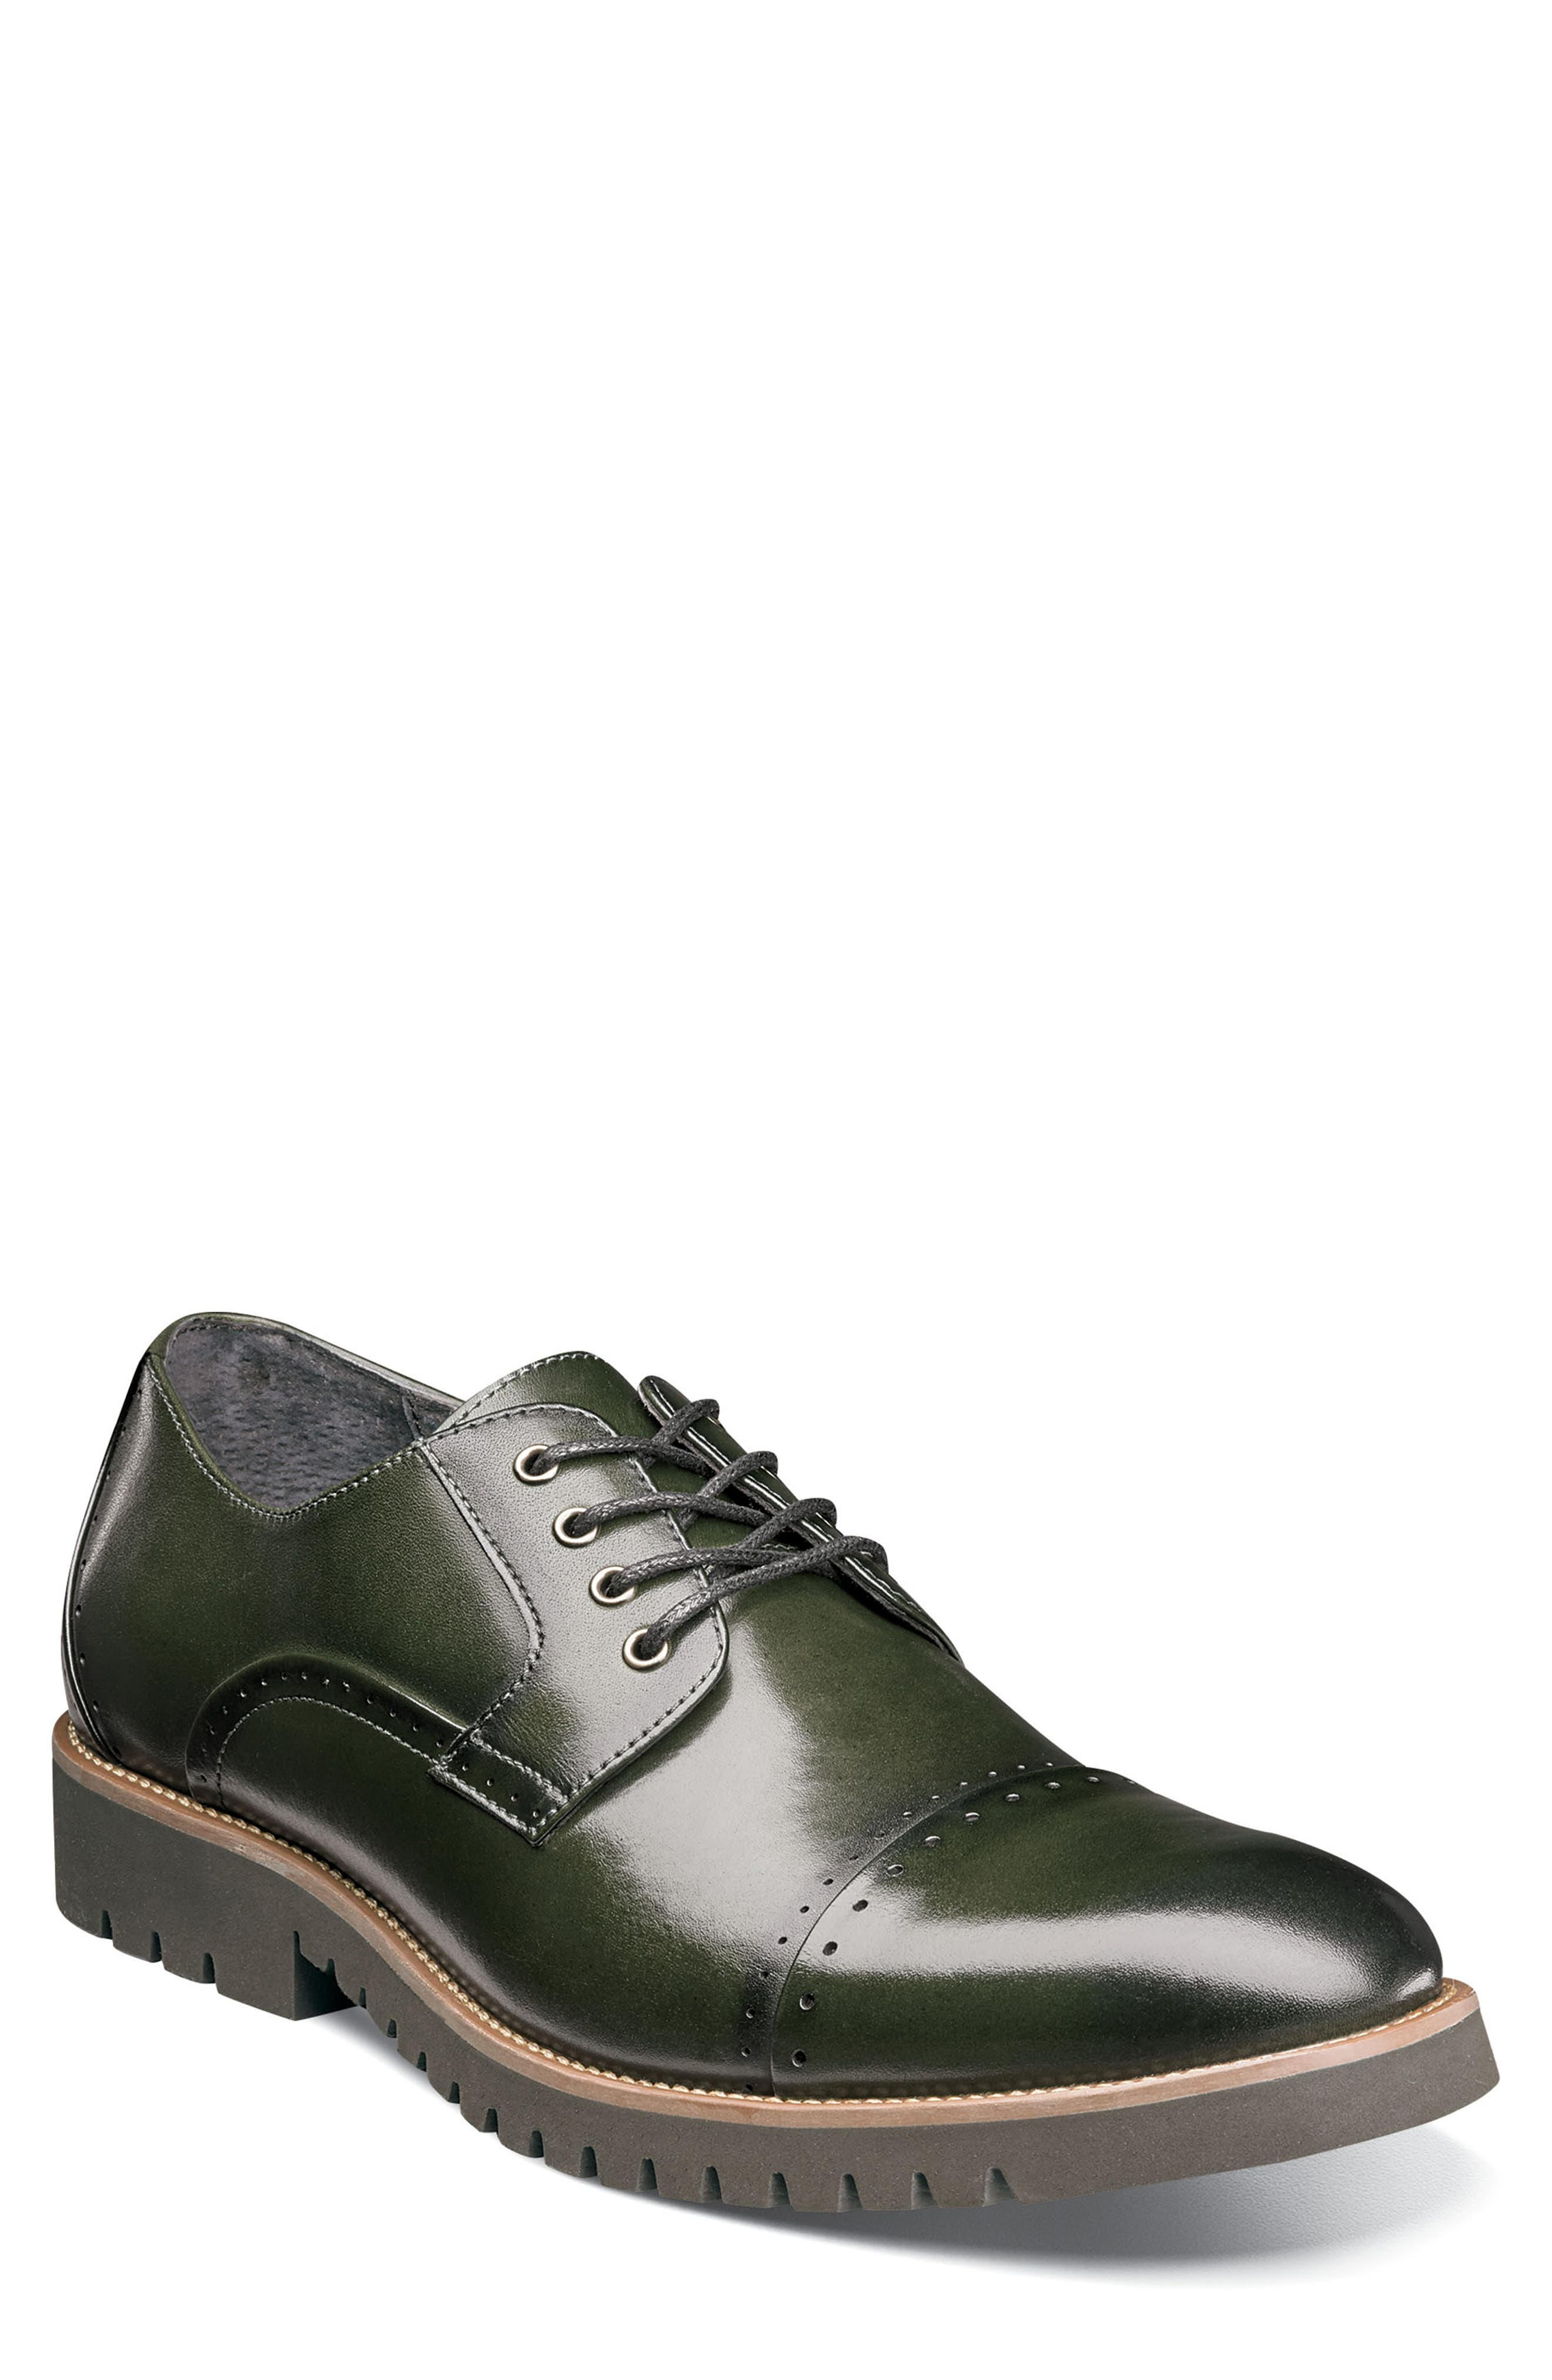 Barcliff Cap Toe Derby,                             Main thumbnail 1, color,                             CARGO GREEN LEATHER